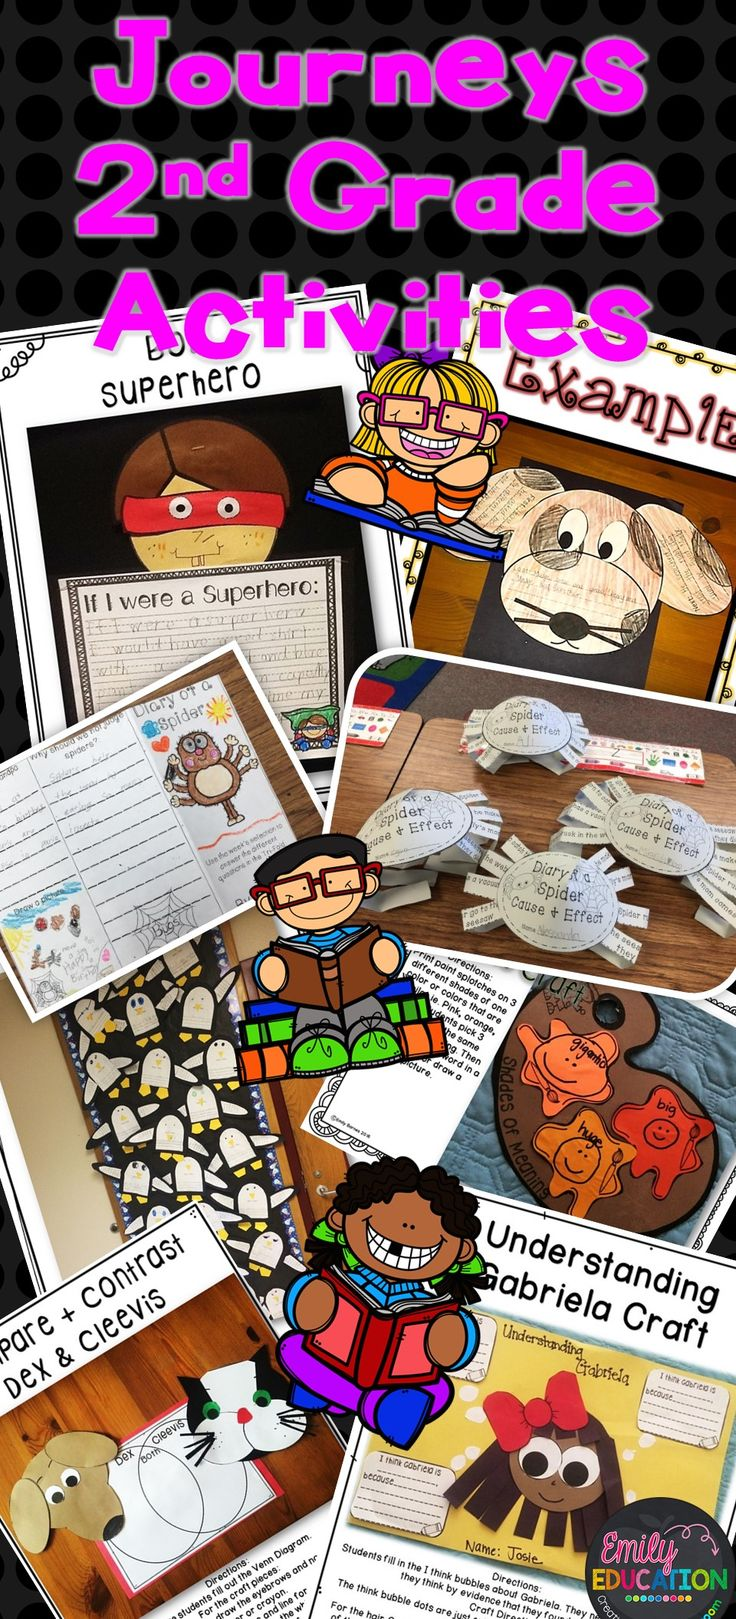 Journeys 2nd Grade Supplement Activities. This Seller has so many creative activities to help supplement the Journeys Reading Series. No seller can compare to her quality/creativity. Emily Education Creativity for the Classroom